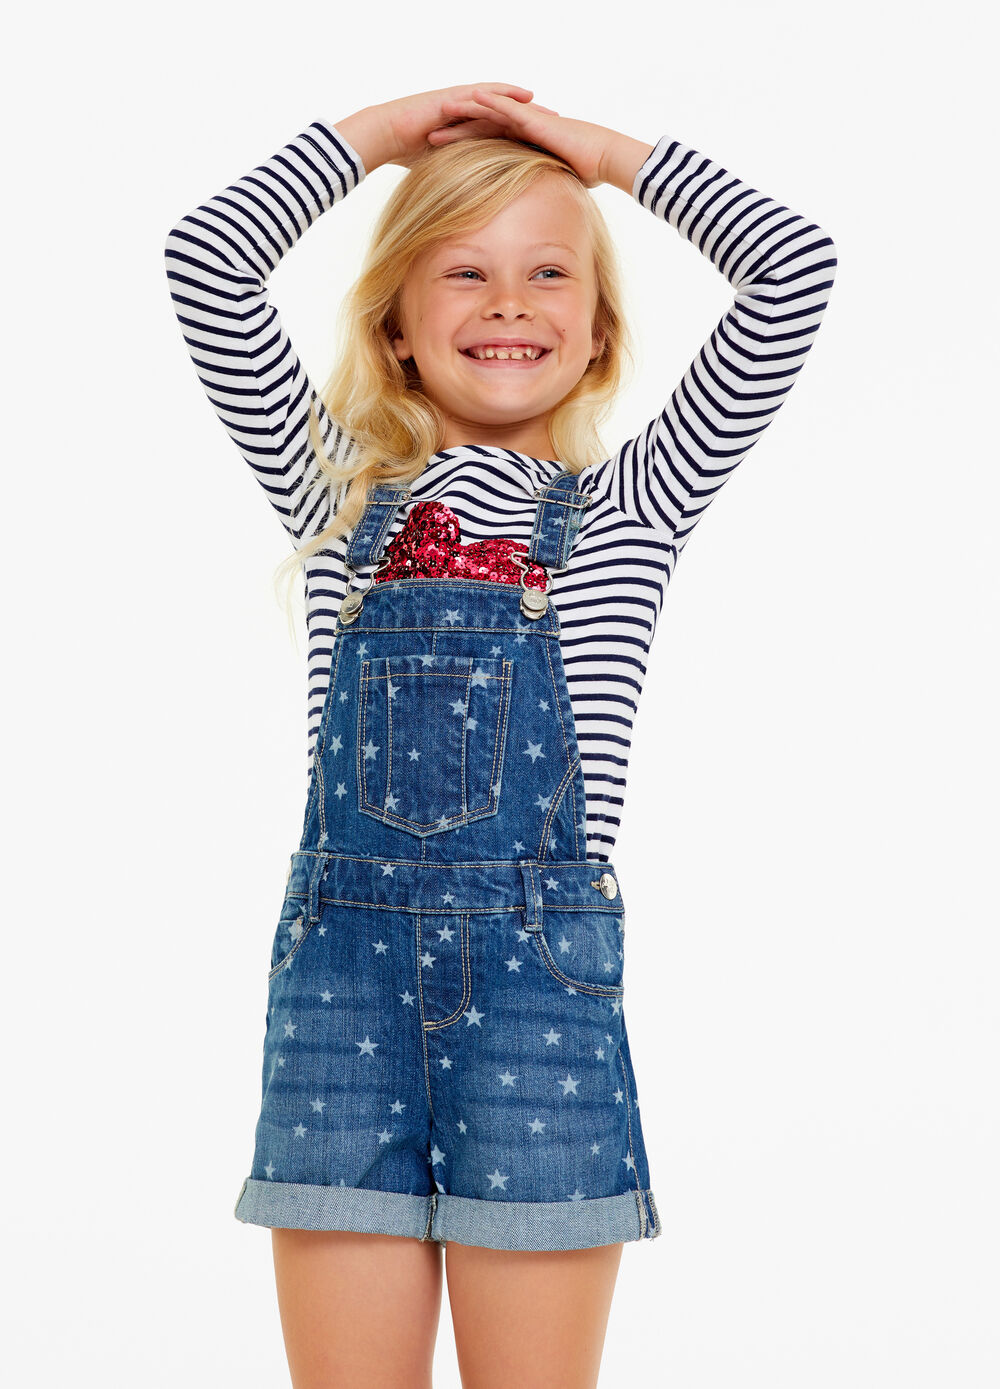 Worn denim dungarees with stars